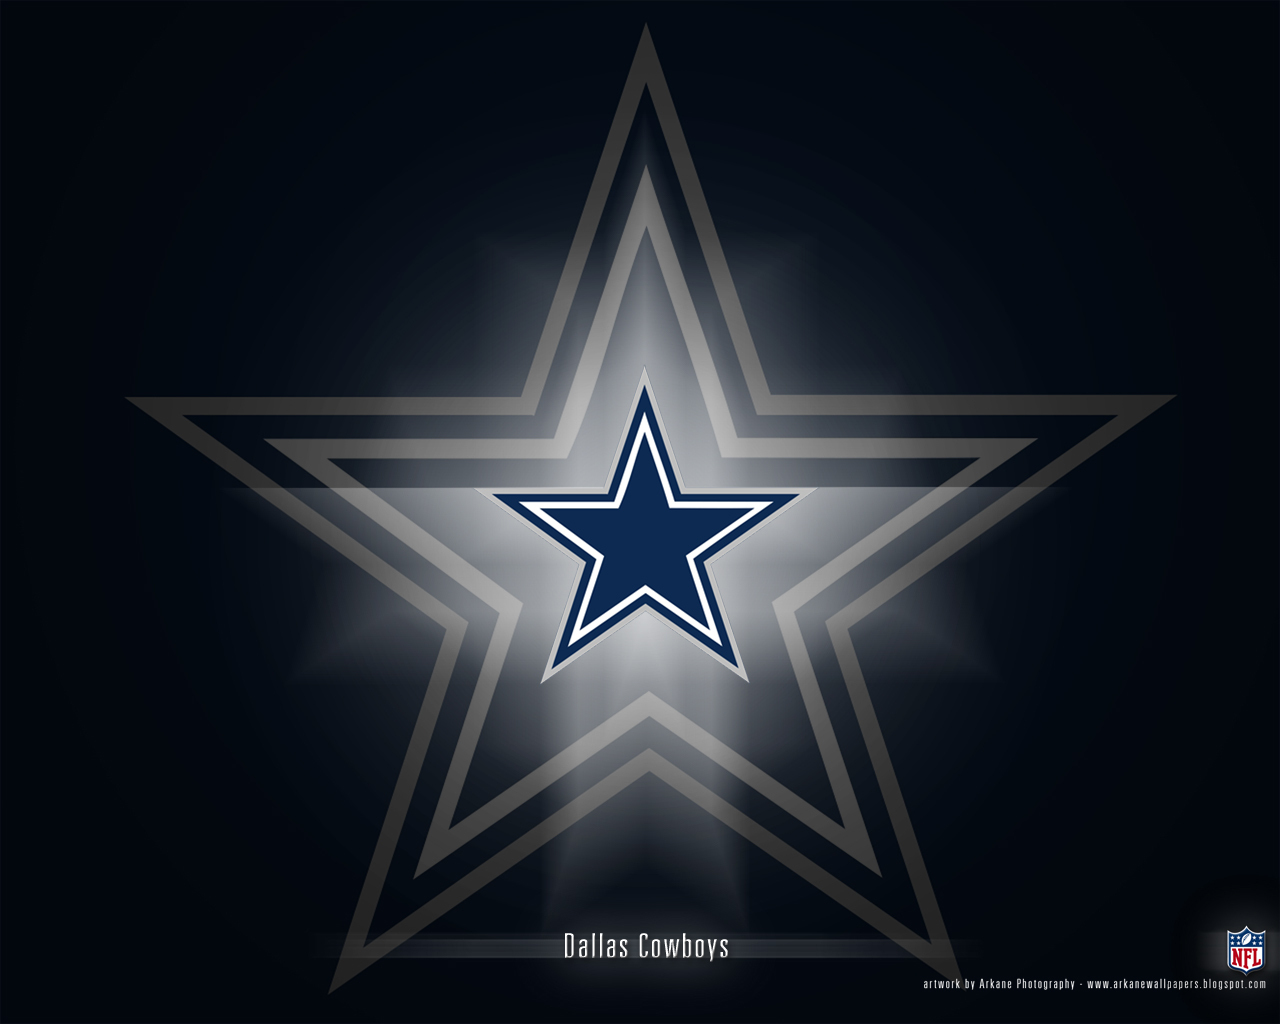 Dallas Cowboys - Dallas Cowboys Wallpaper (9173313) - Fanpop